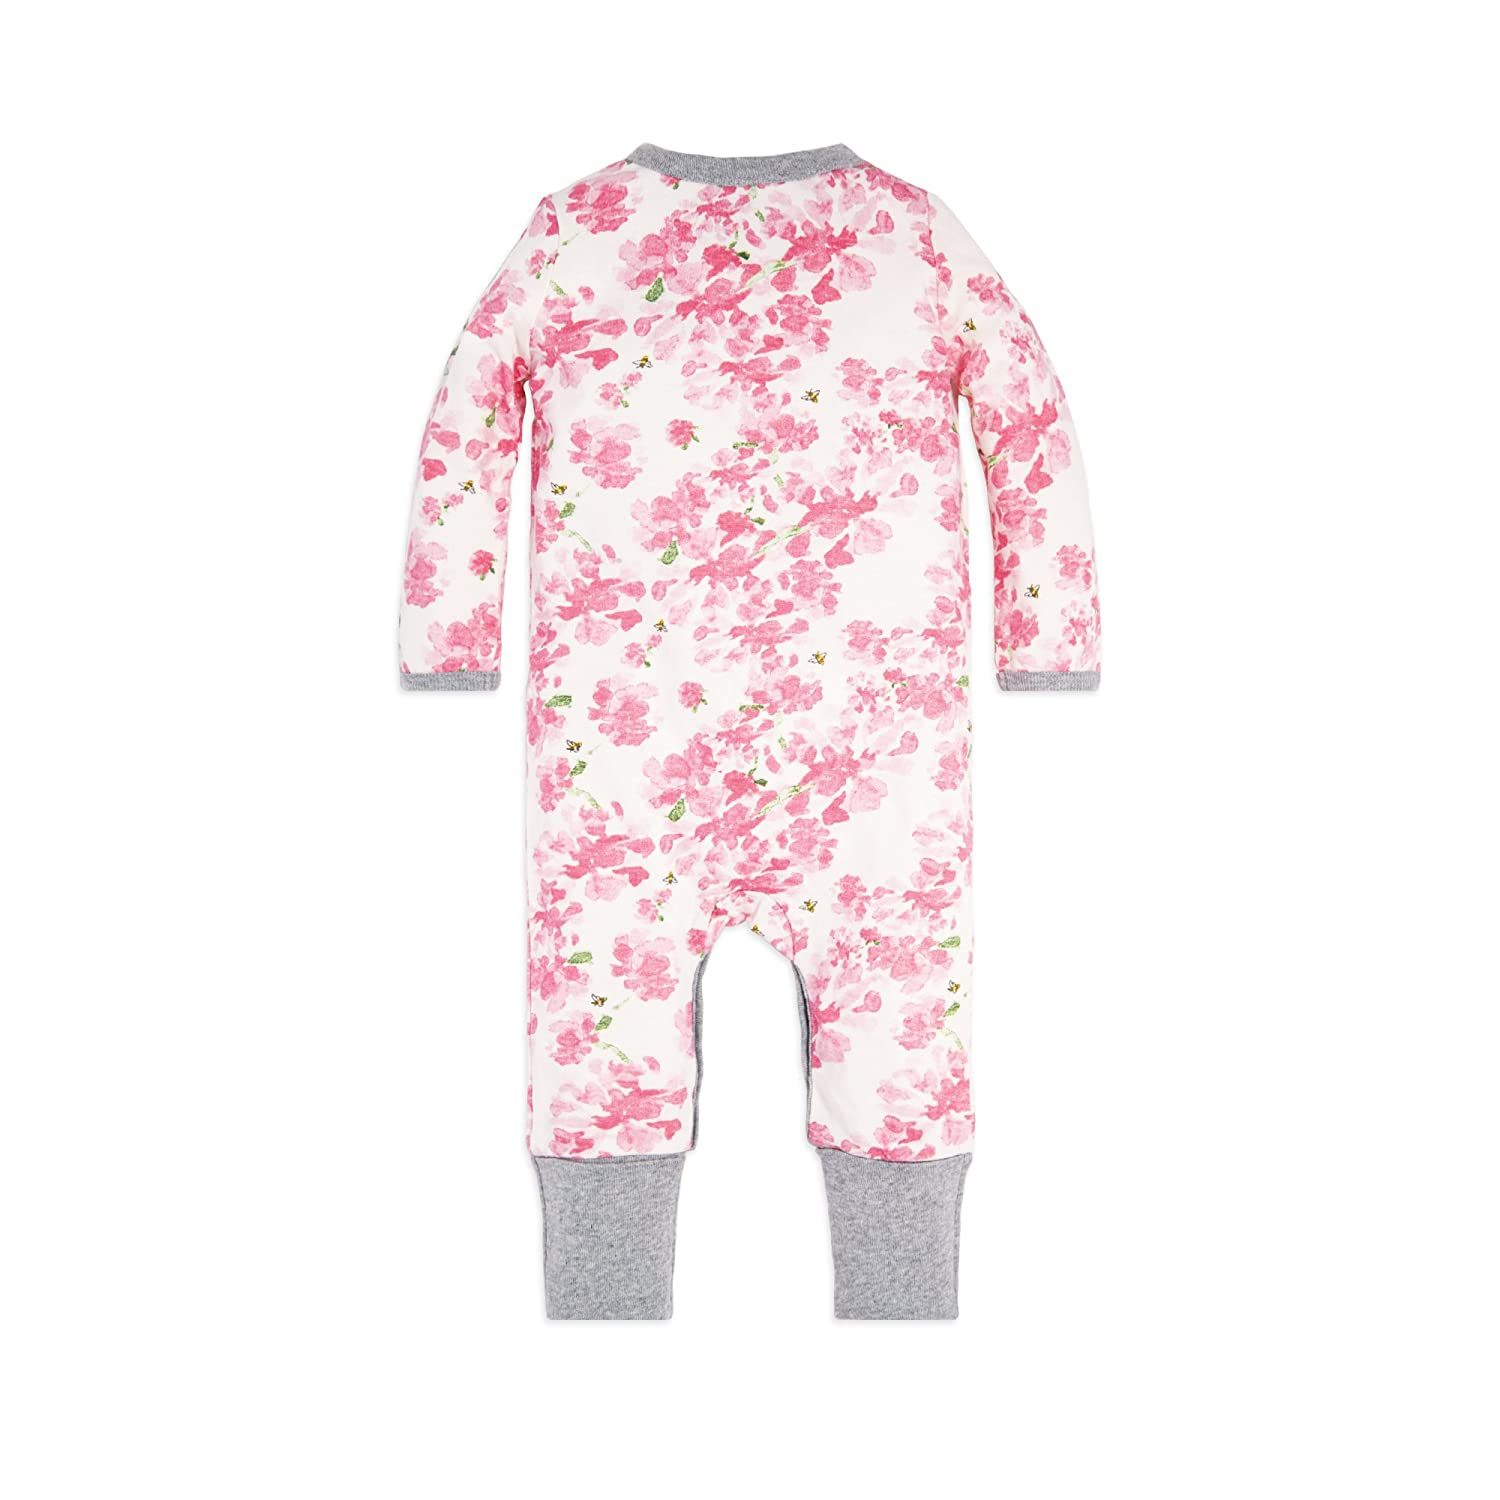 Burts Bees Baby 100/% Organic Cotton One-Piece Coverall Baby Girls Romper Jumpsuit